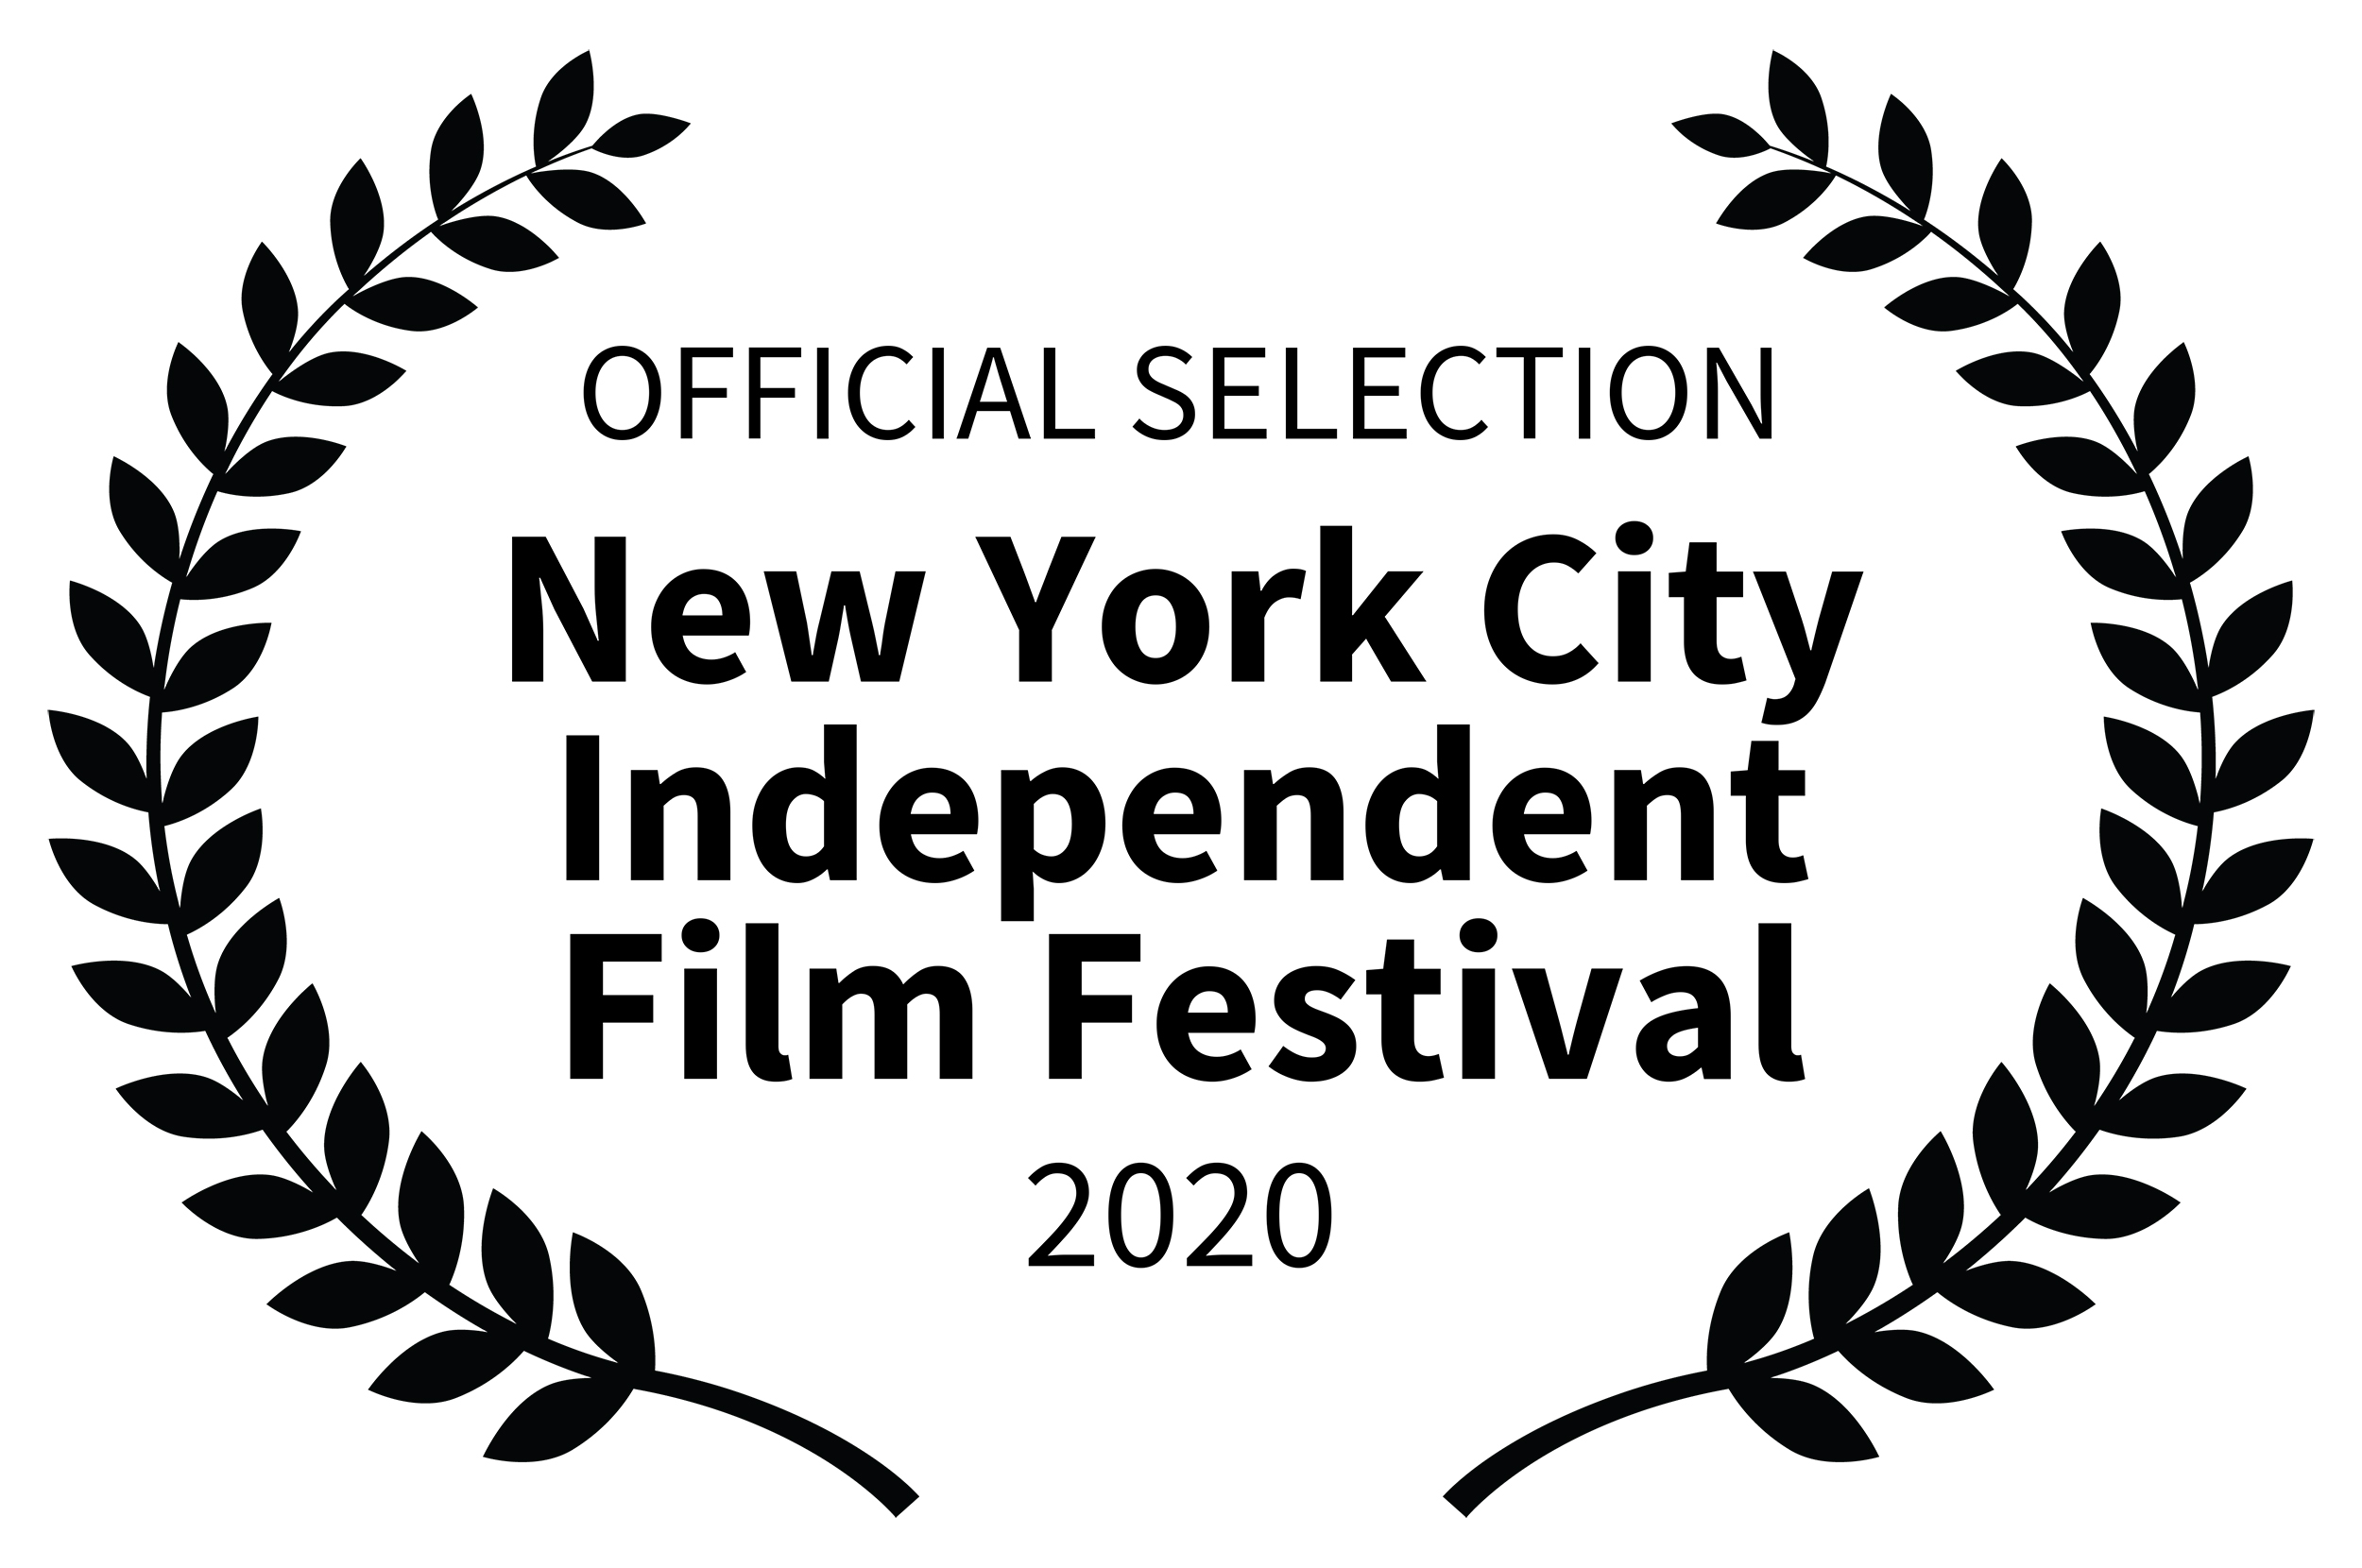 OFFICIALSELECTION-NewYorkCityIndependentFilmFestival-2020_small